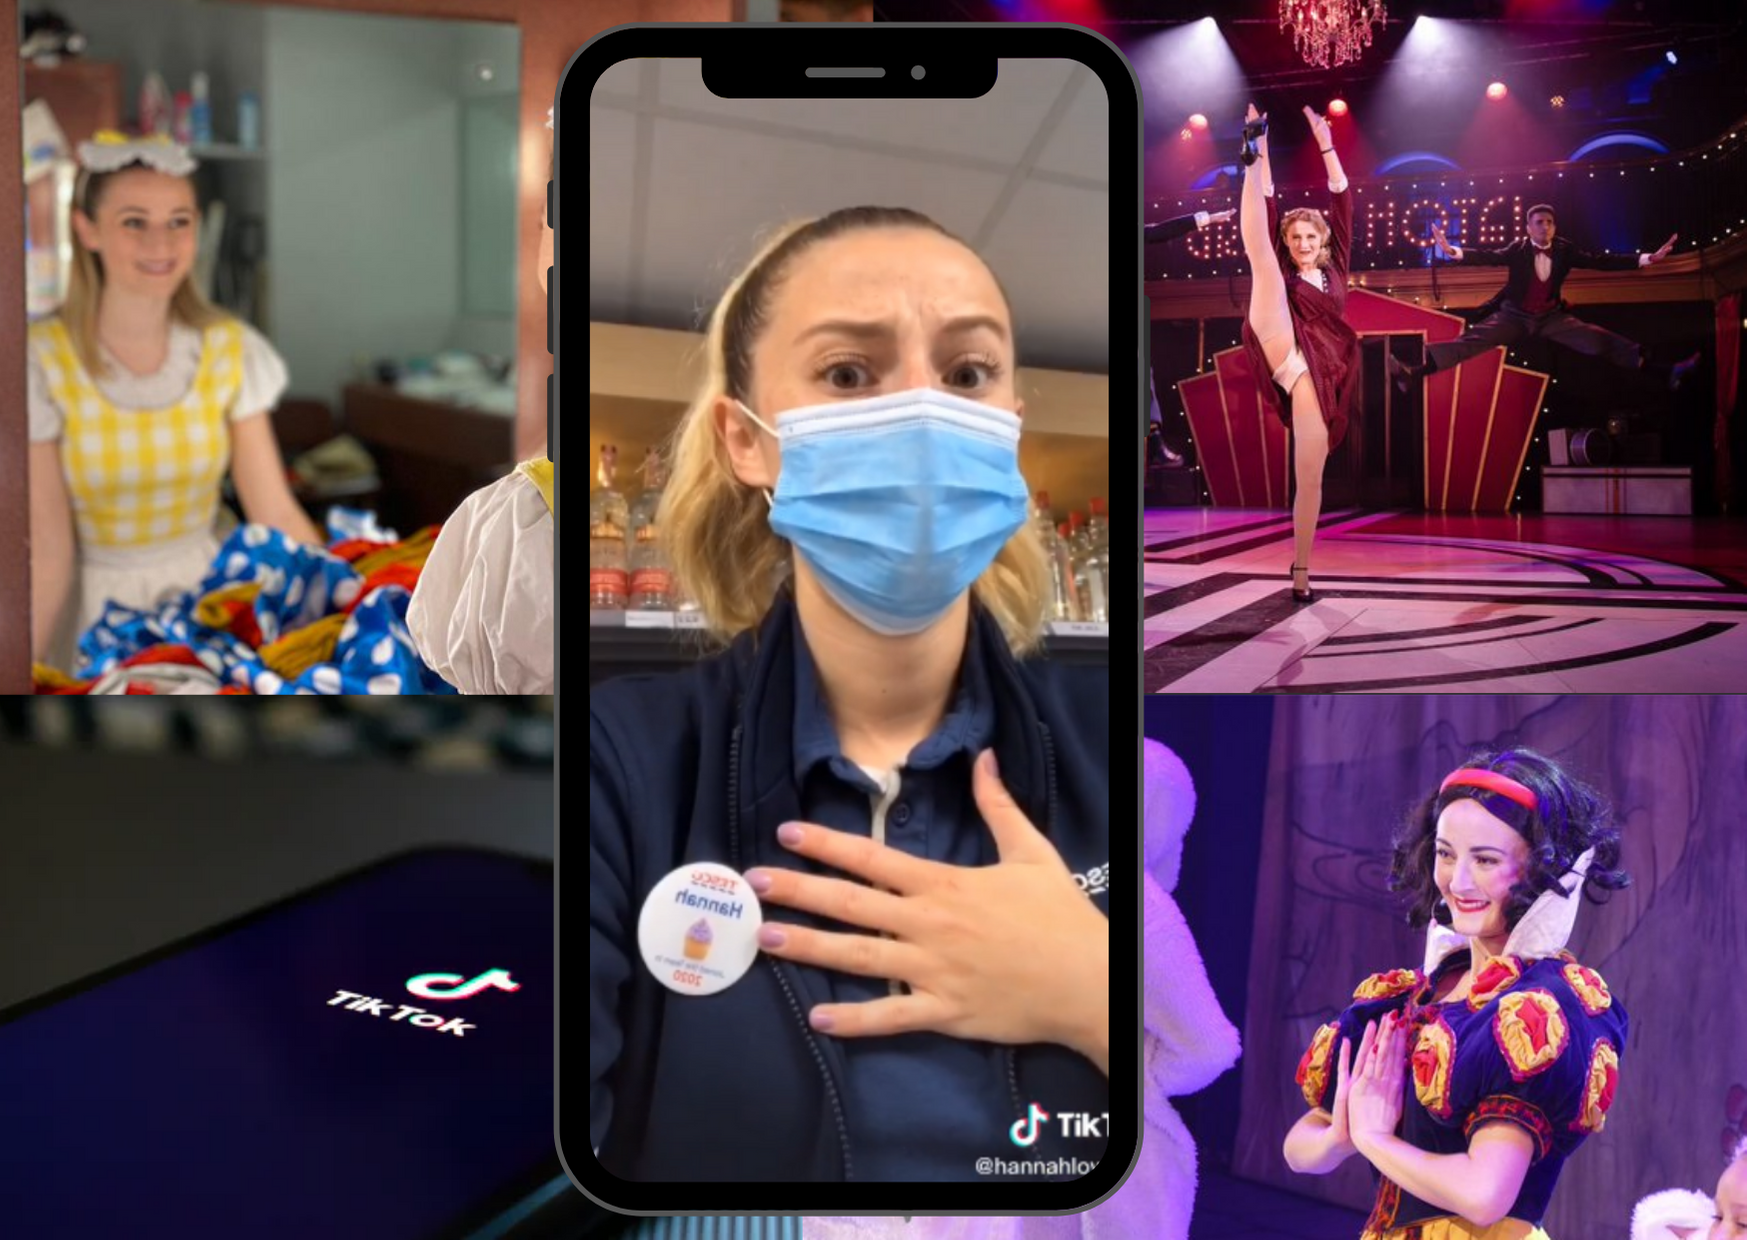 Meet The Basingstoke Tesco Worker Who Is Viral On Tik Tok Basingstoke Gazette Myinstants is where you discover and create instant sound effect buttons. meet the basingstoke tesco worker who